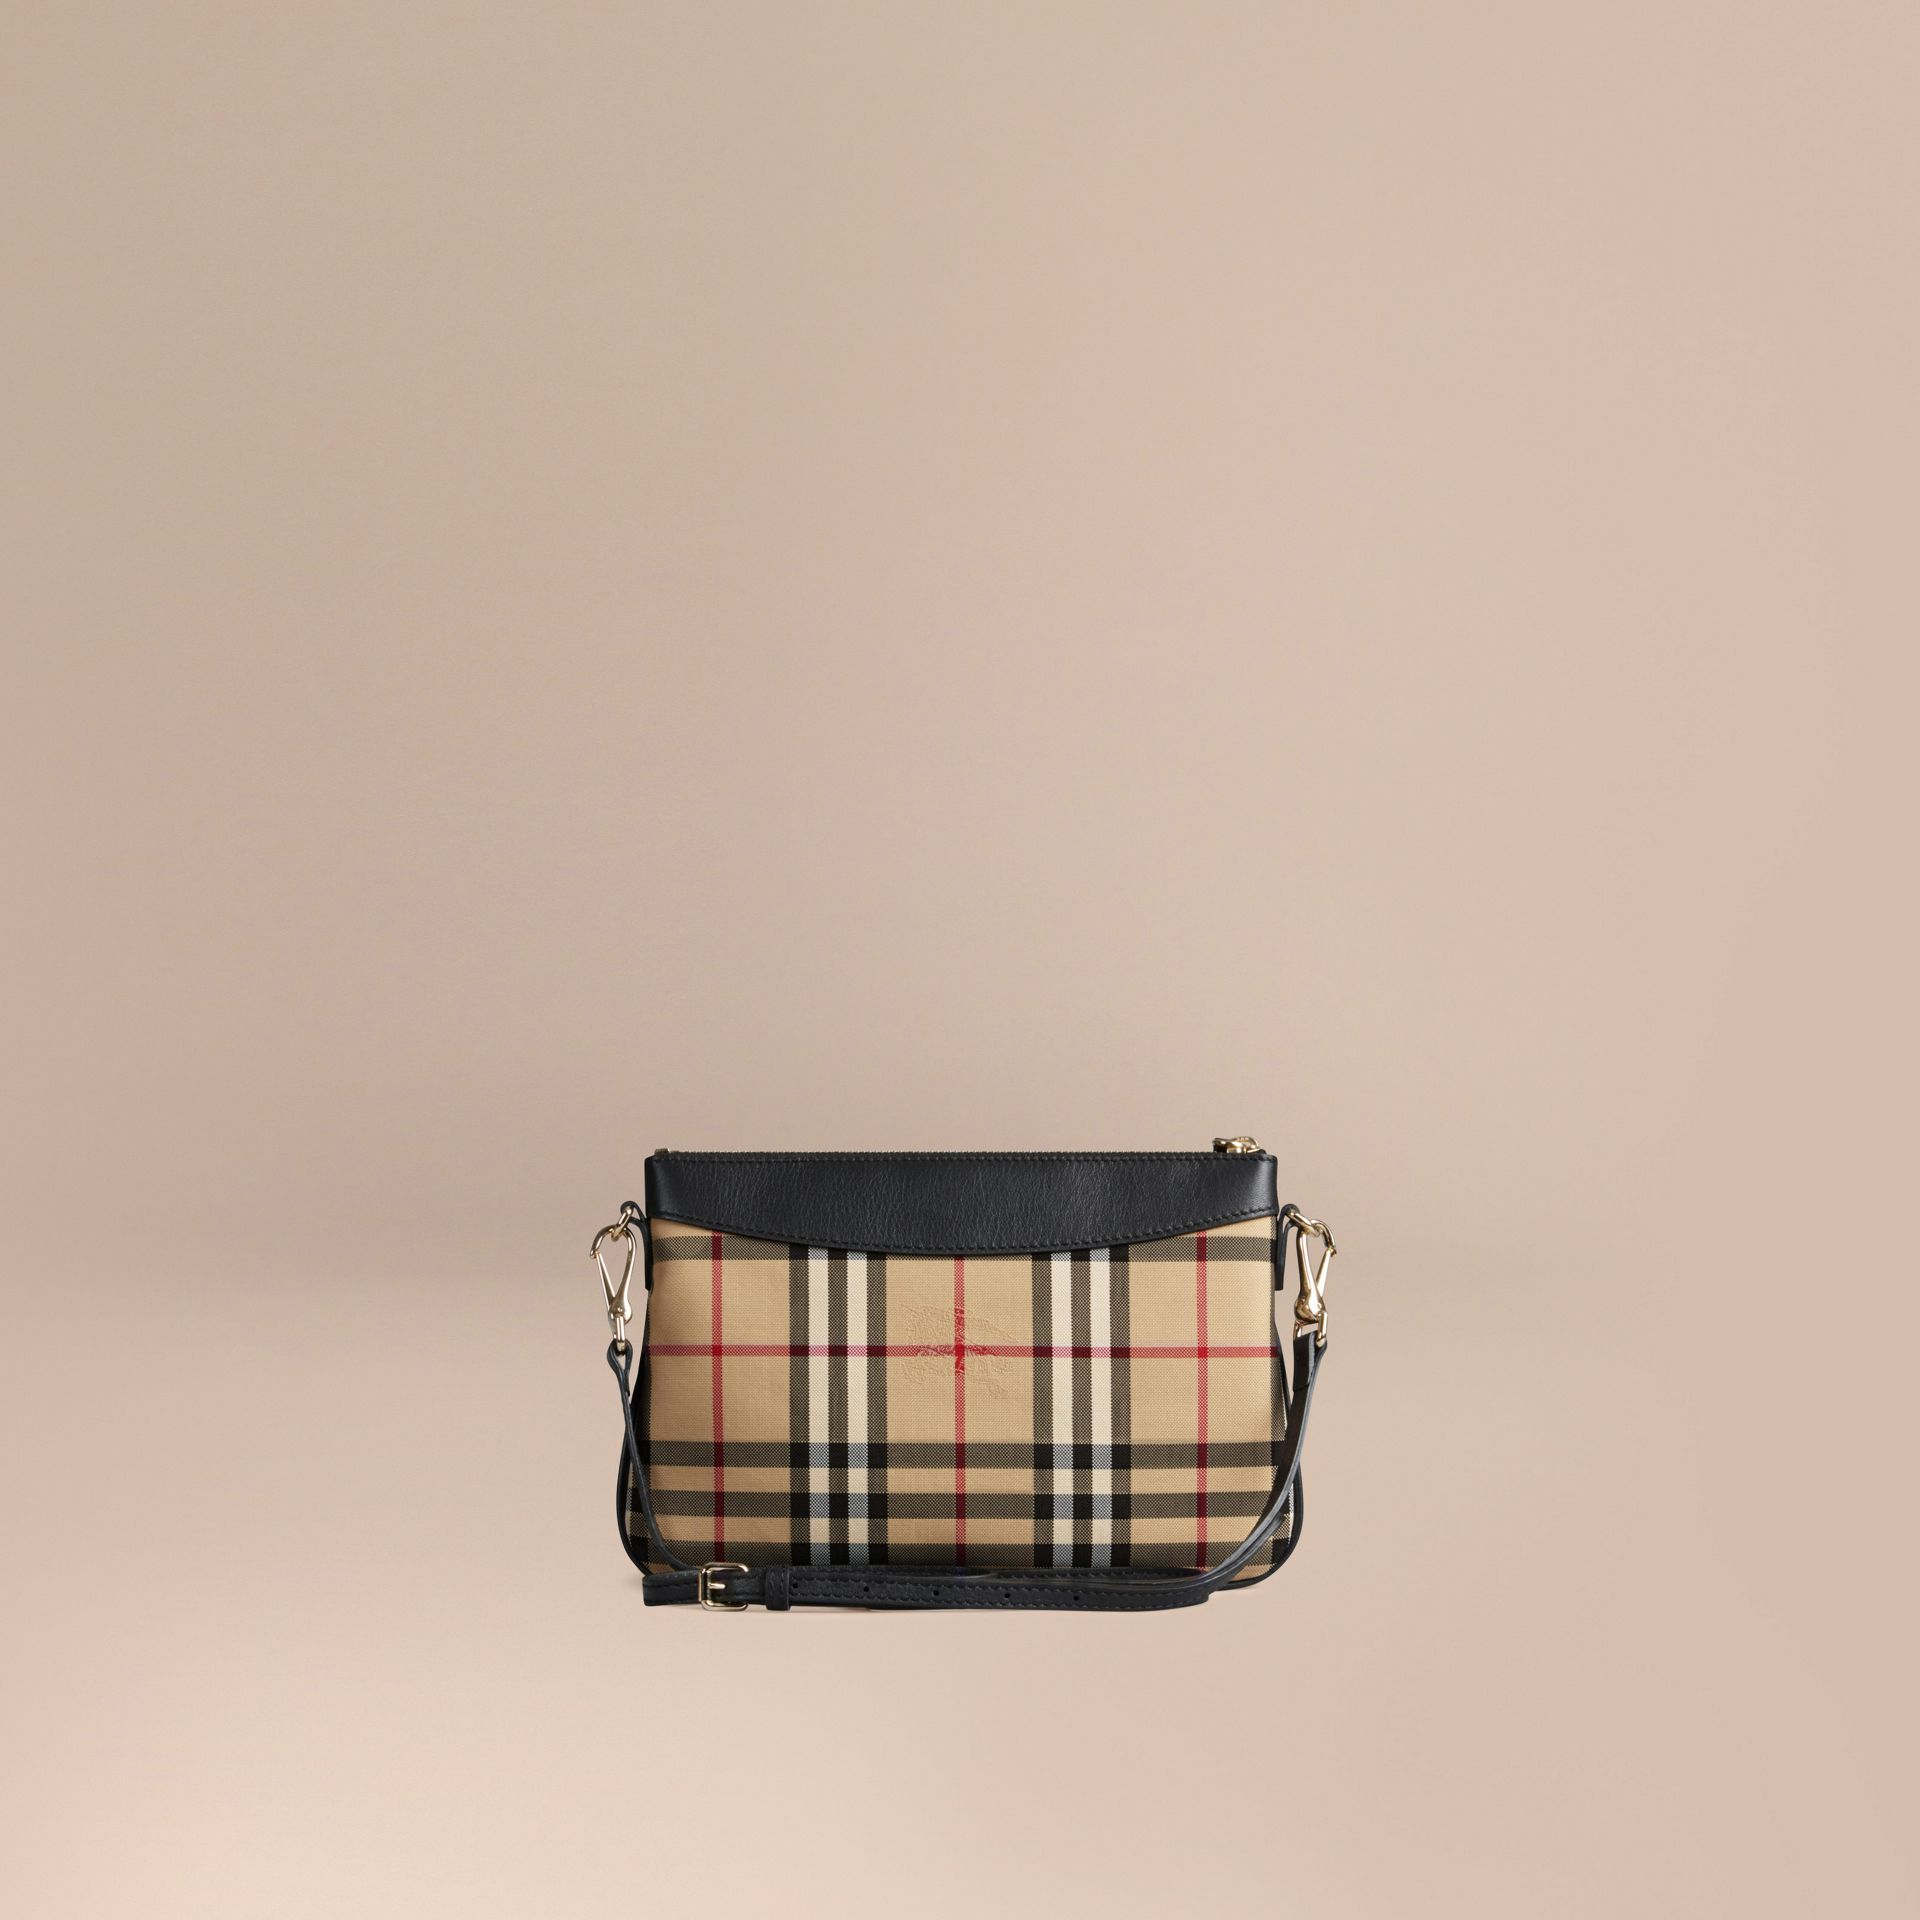 Horseferry Check and Leather Clutch Bag in Black - Women | Burberry Canada - gallery image 5